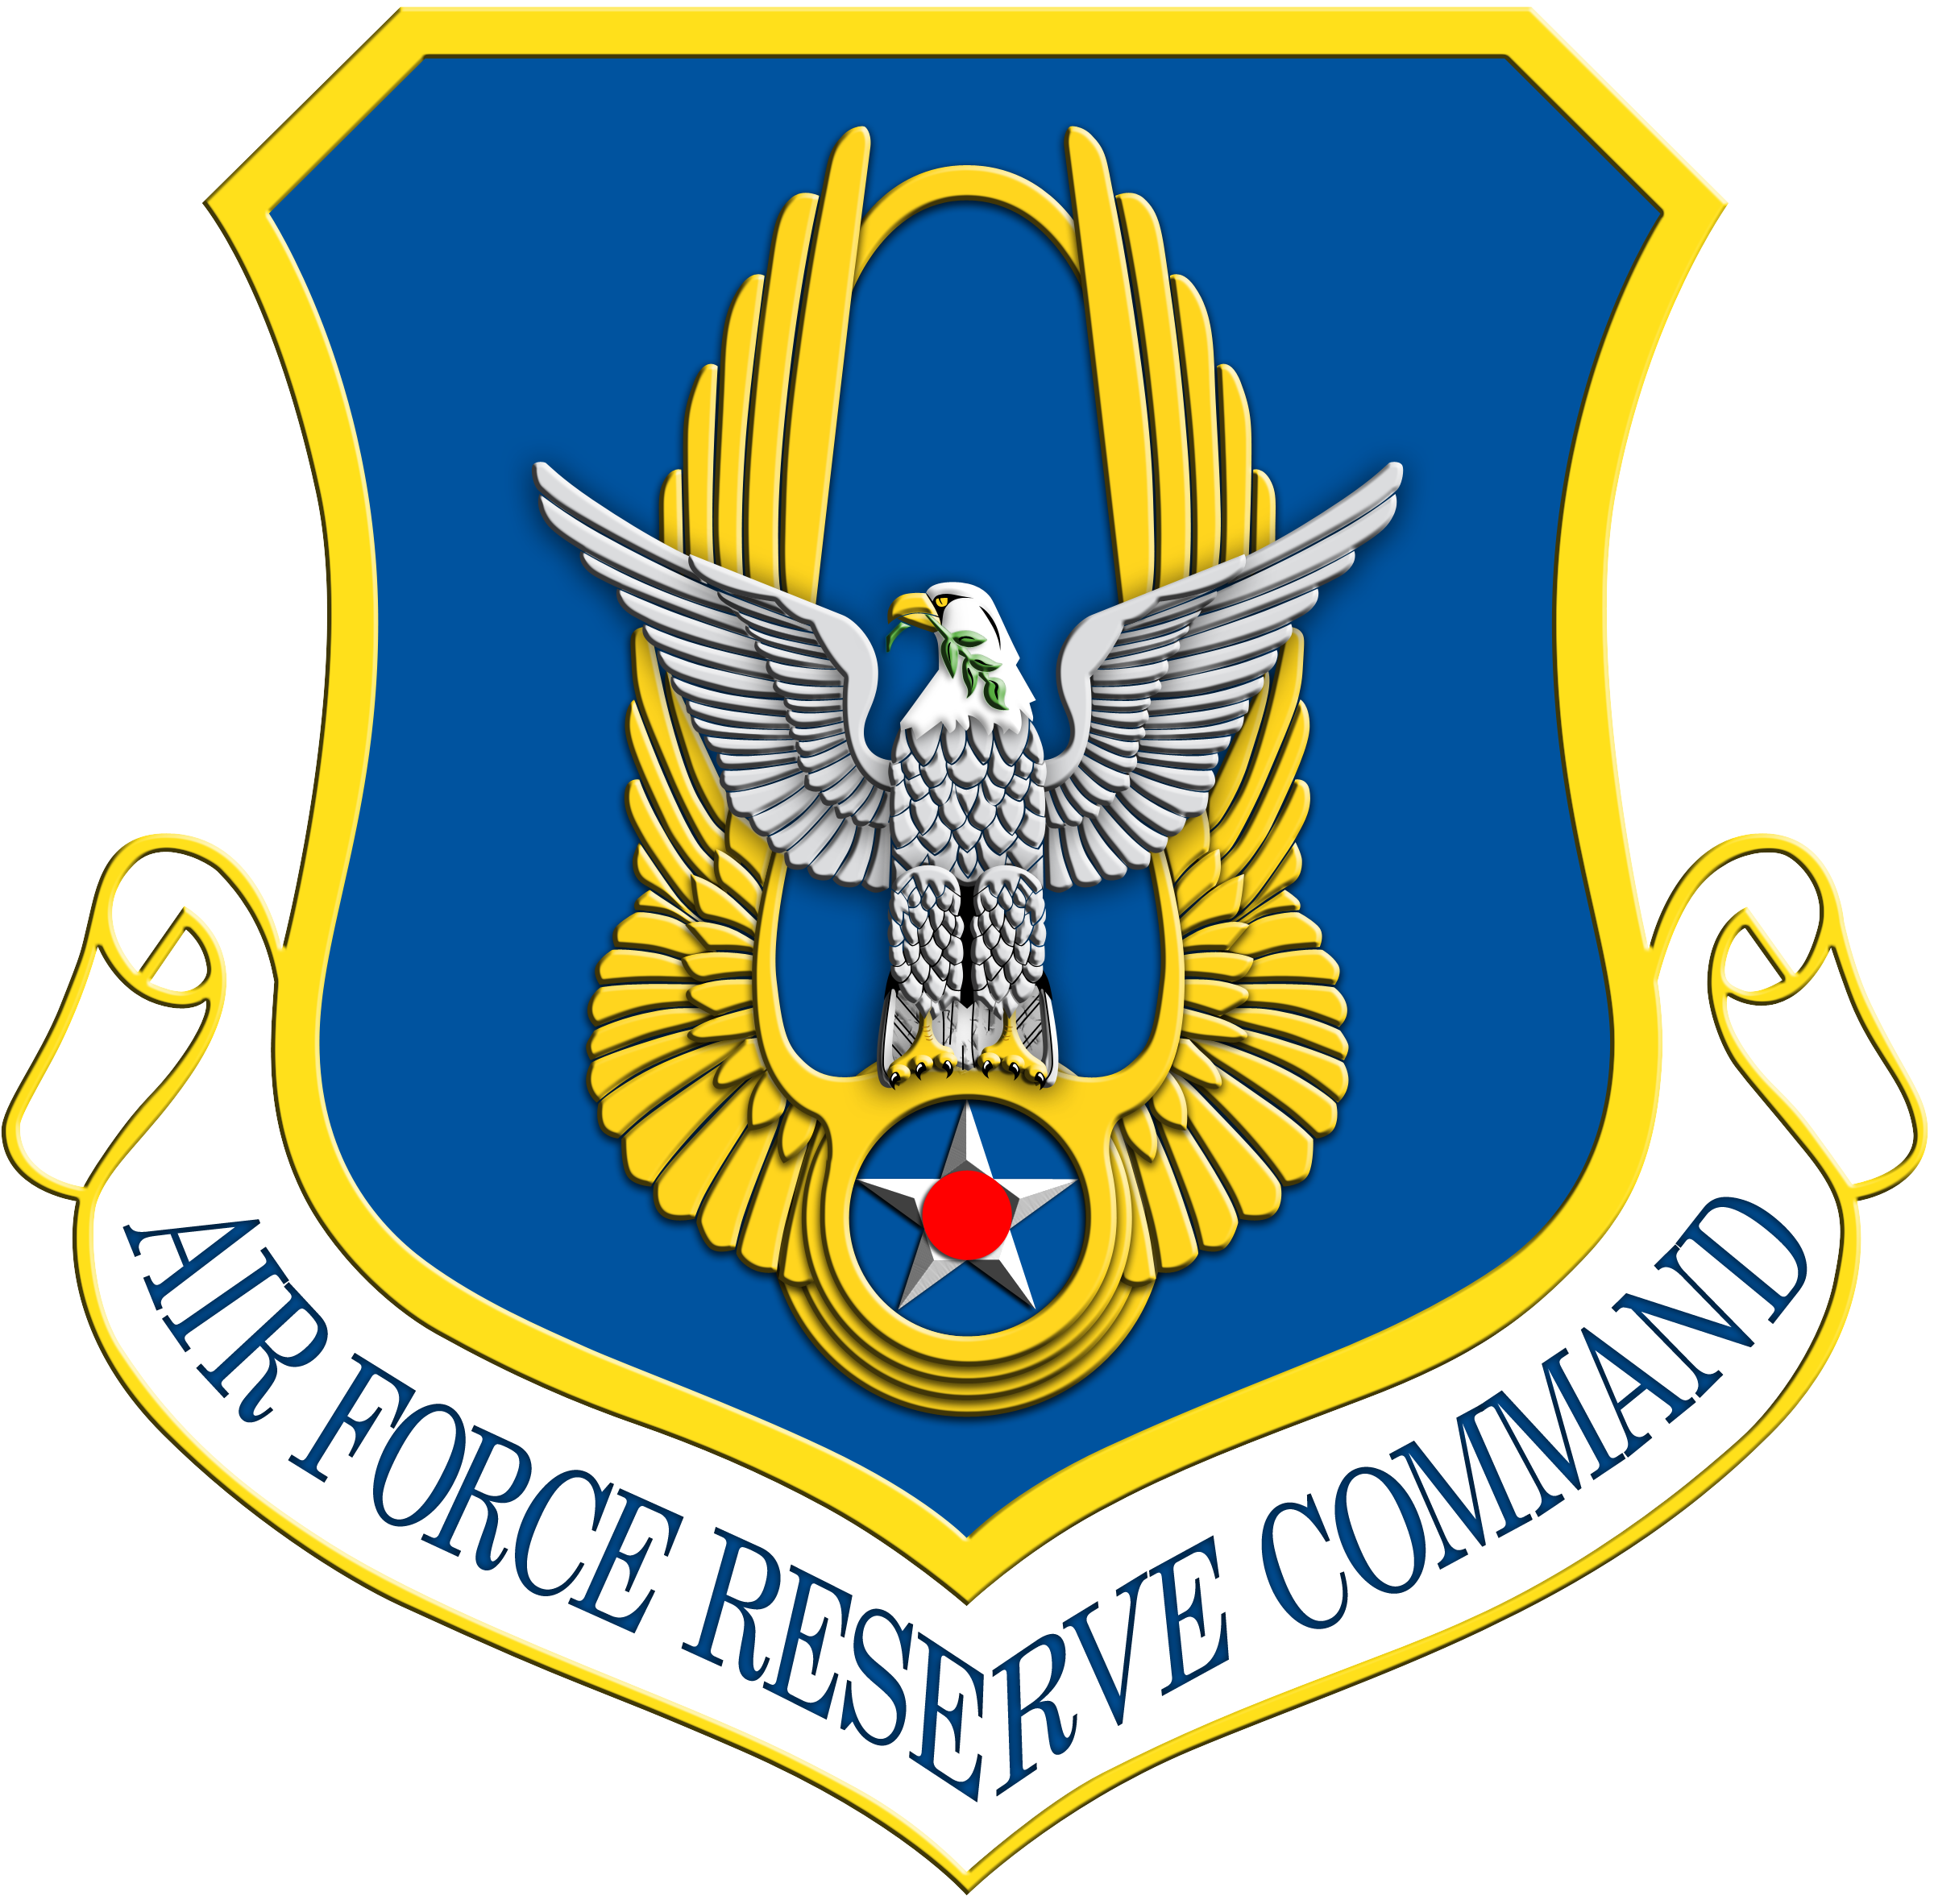 Air Force Reserve: Part-time job, full-time rewards ...